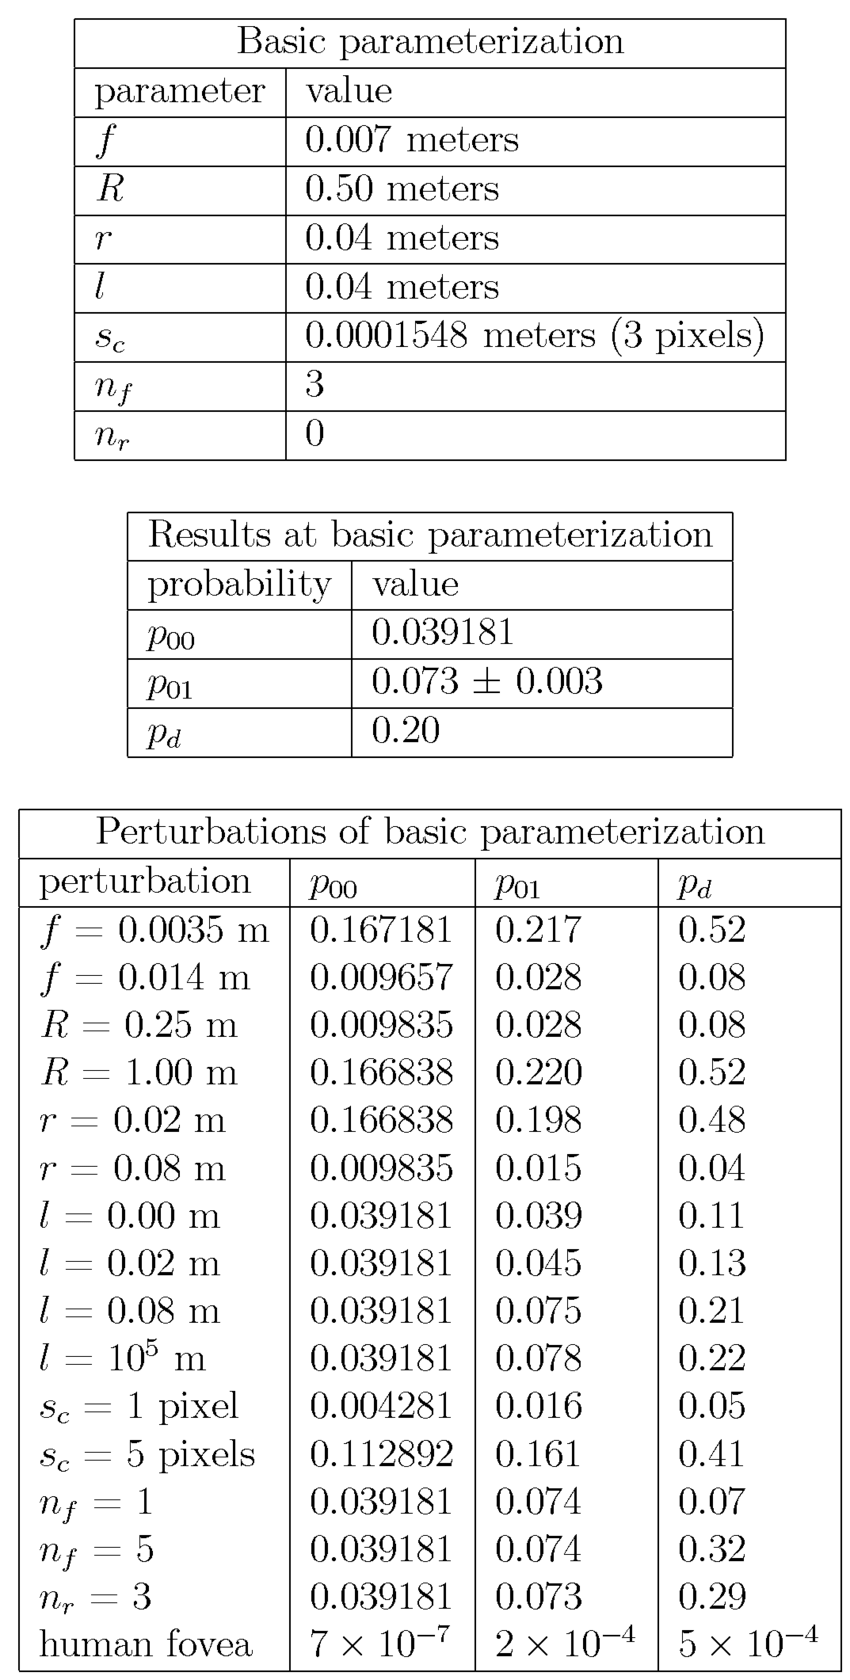 hight resolution of results for a tabletop vision system the basic parameterization corresponds to our experimental setup